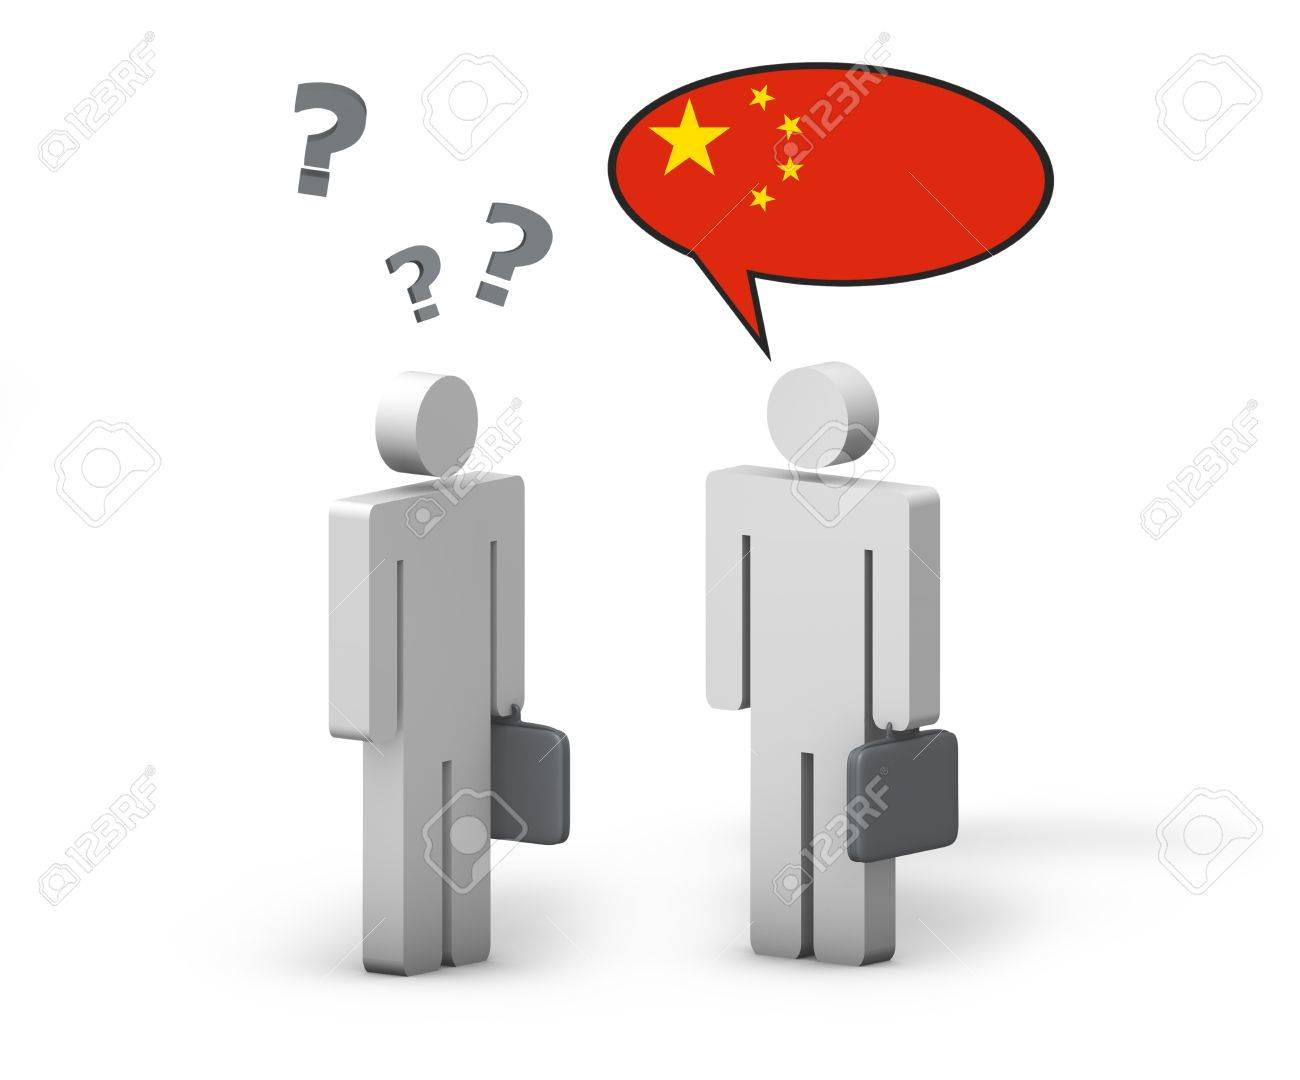 Business Chinese Mandarin concept with a funny conversation between